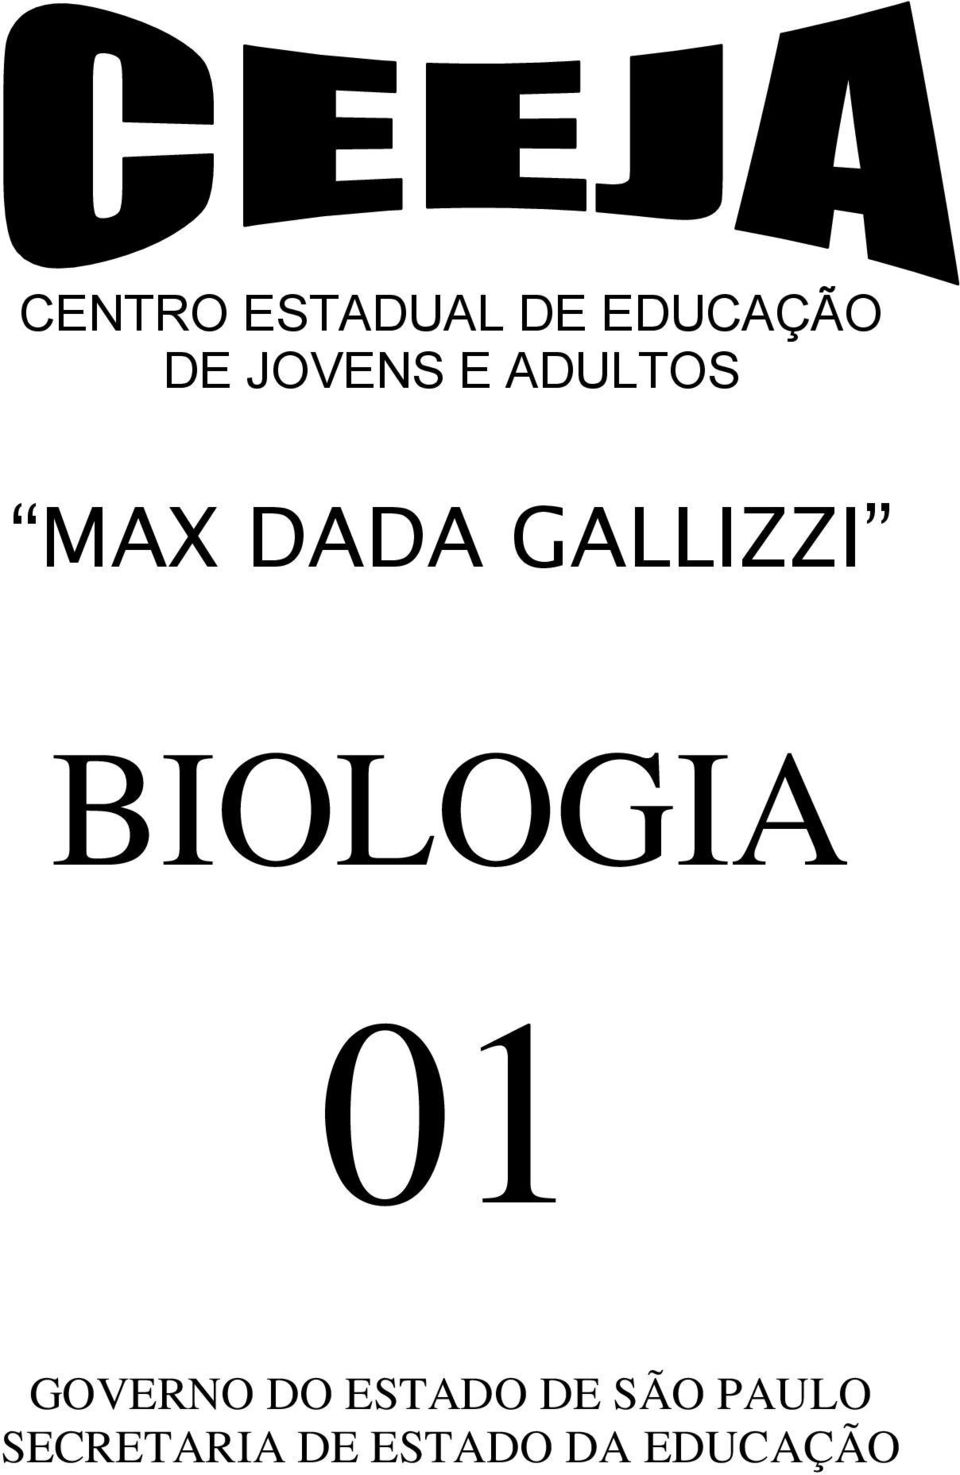 BIOLOGIA 01 GOVERNO DO ESTADO DE